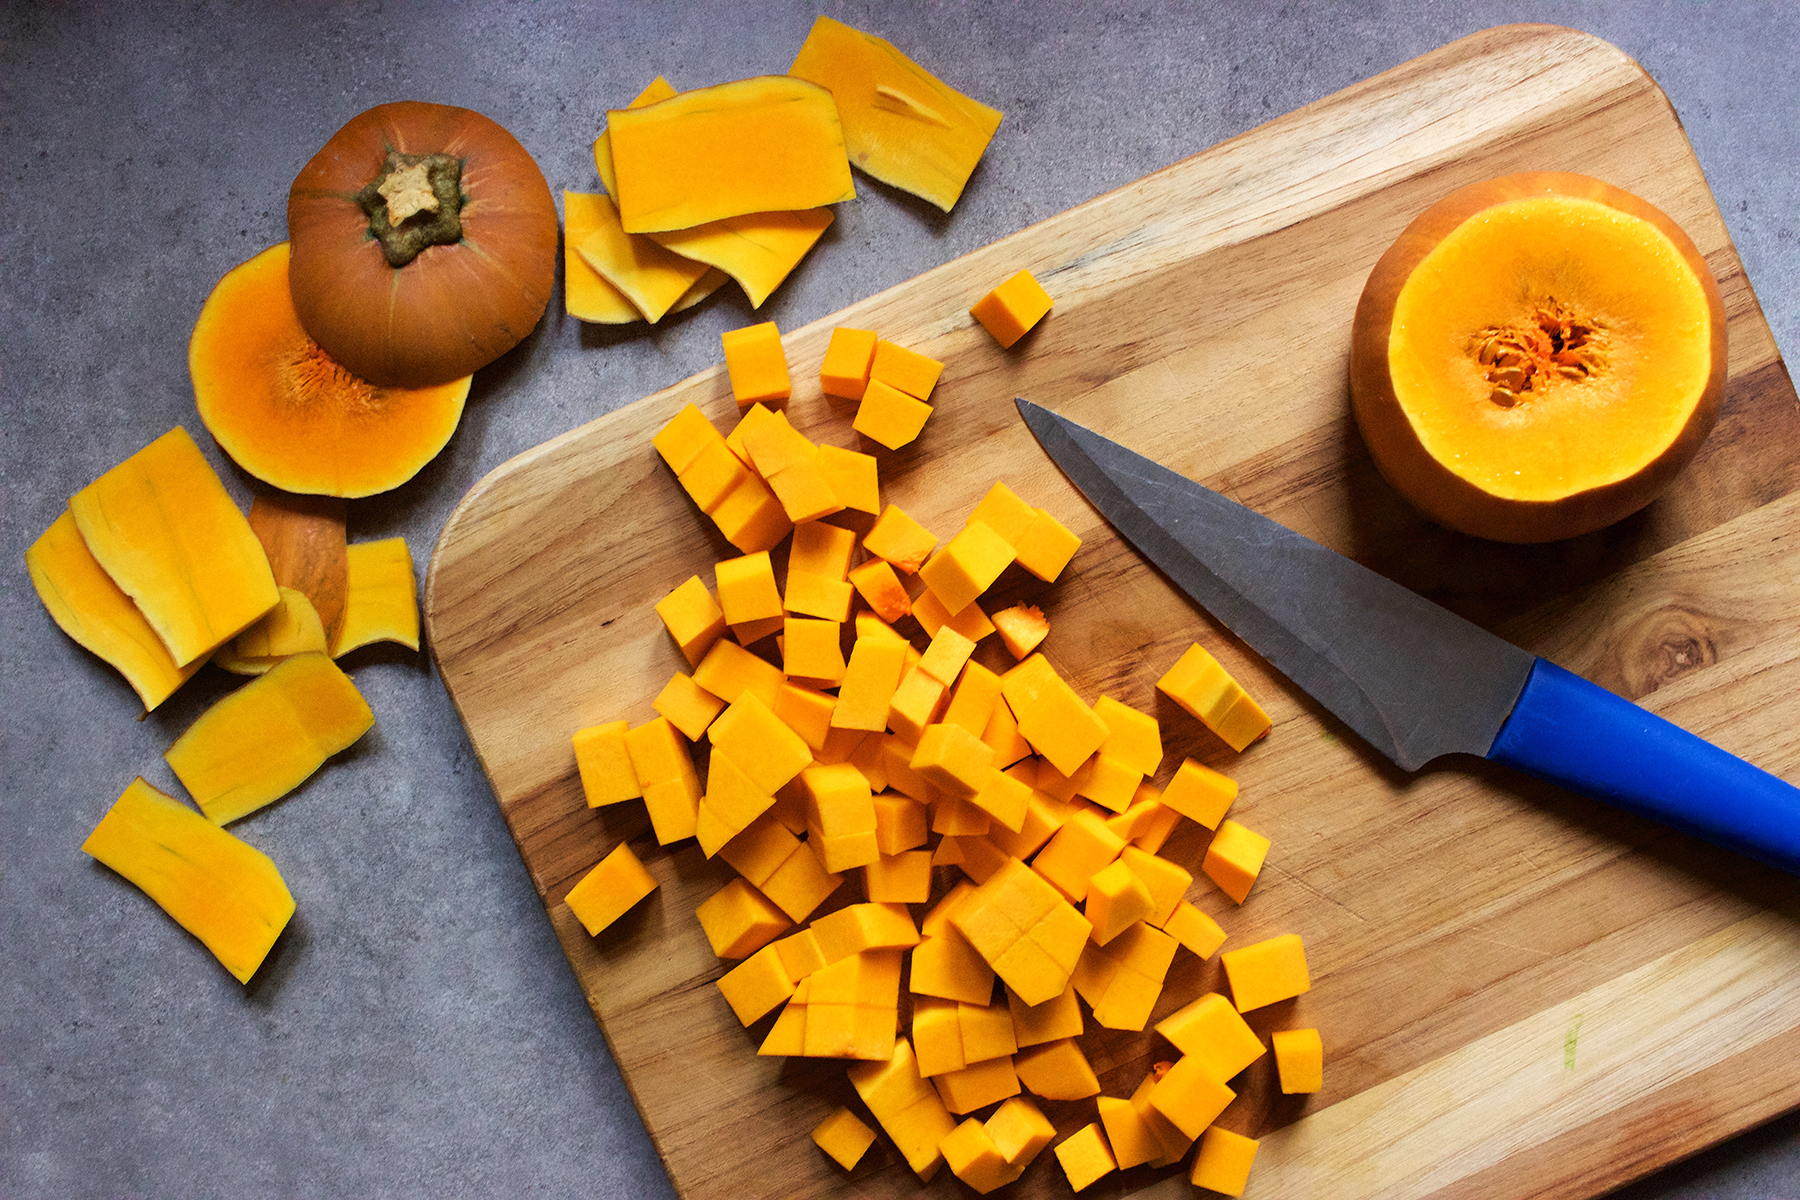 In a home kitchen, a butternut squash is being peeled and chopped into cubes on a wooden cutting board with a knife with a blue handle. Fresh vegetables, from-scratch cooking, nutrition, healthy eating.